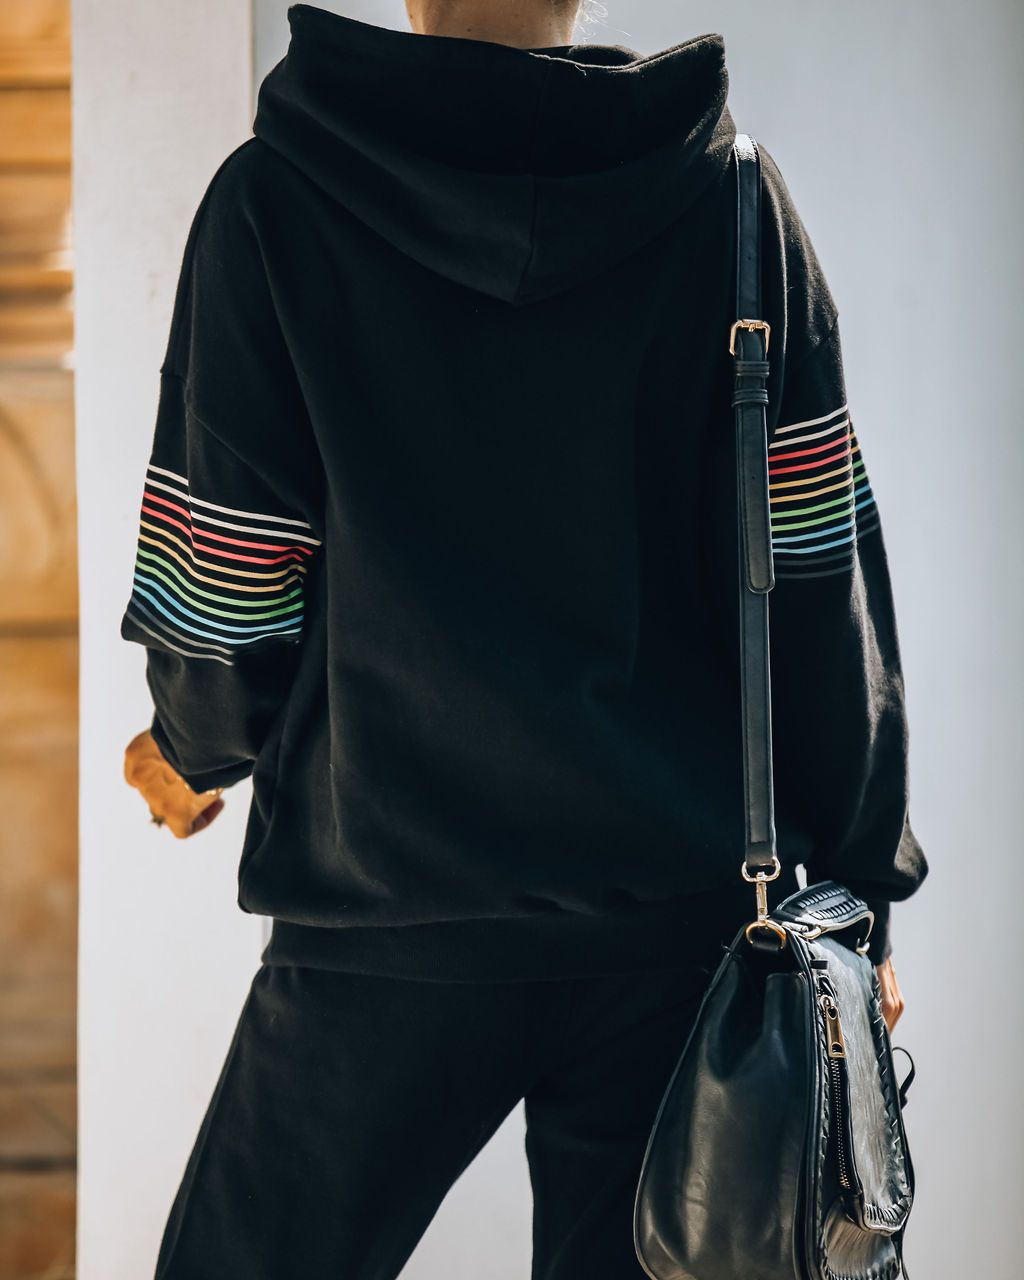 hot sale autumn and winter hot style casual color stripe stitching hooded sweater suit  NSYD3707